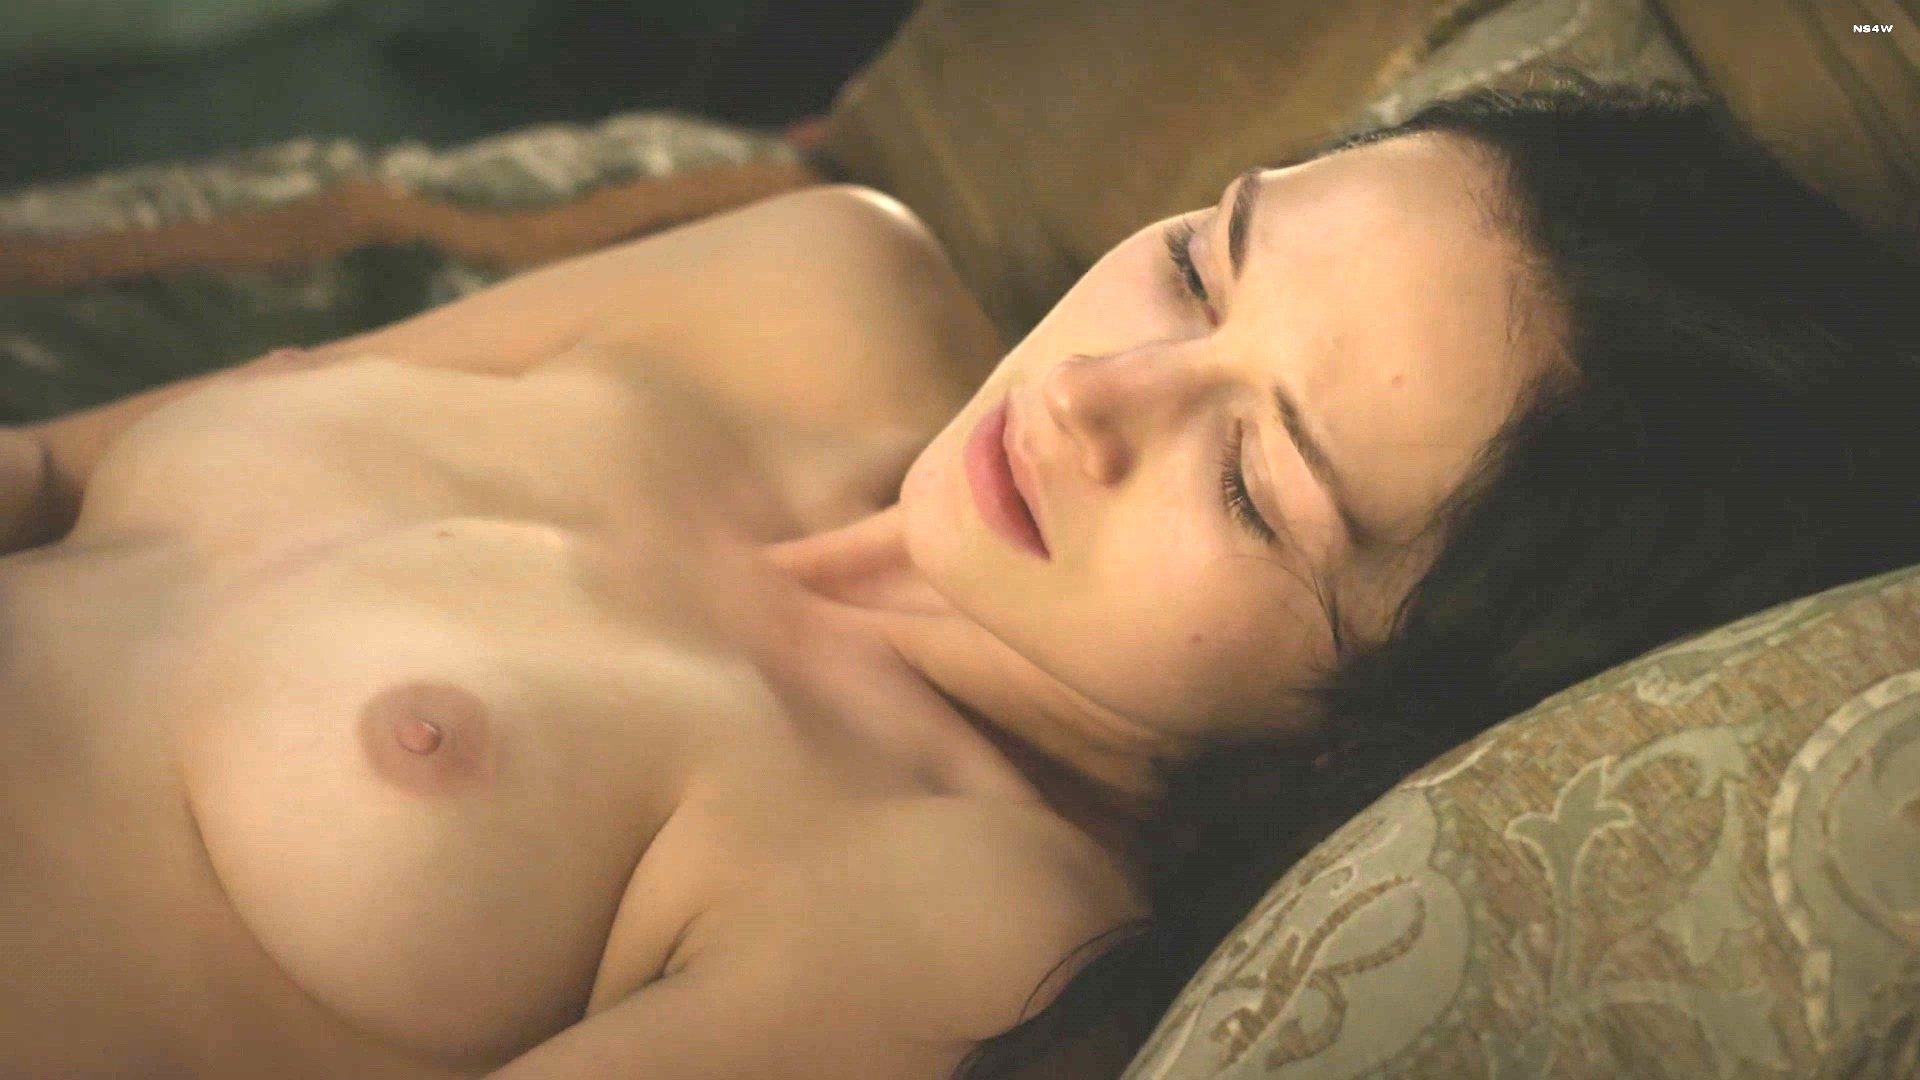 Most nude scenes by actress